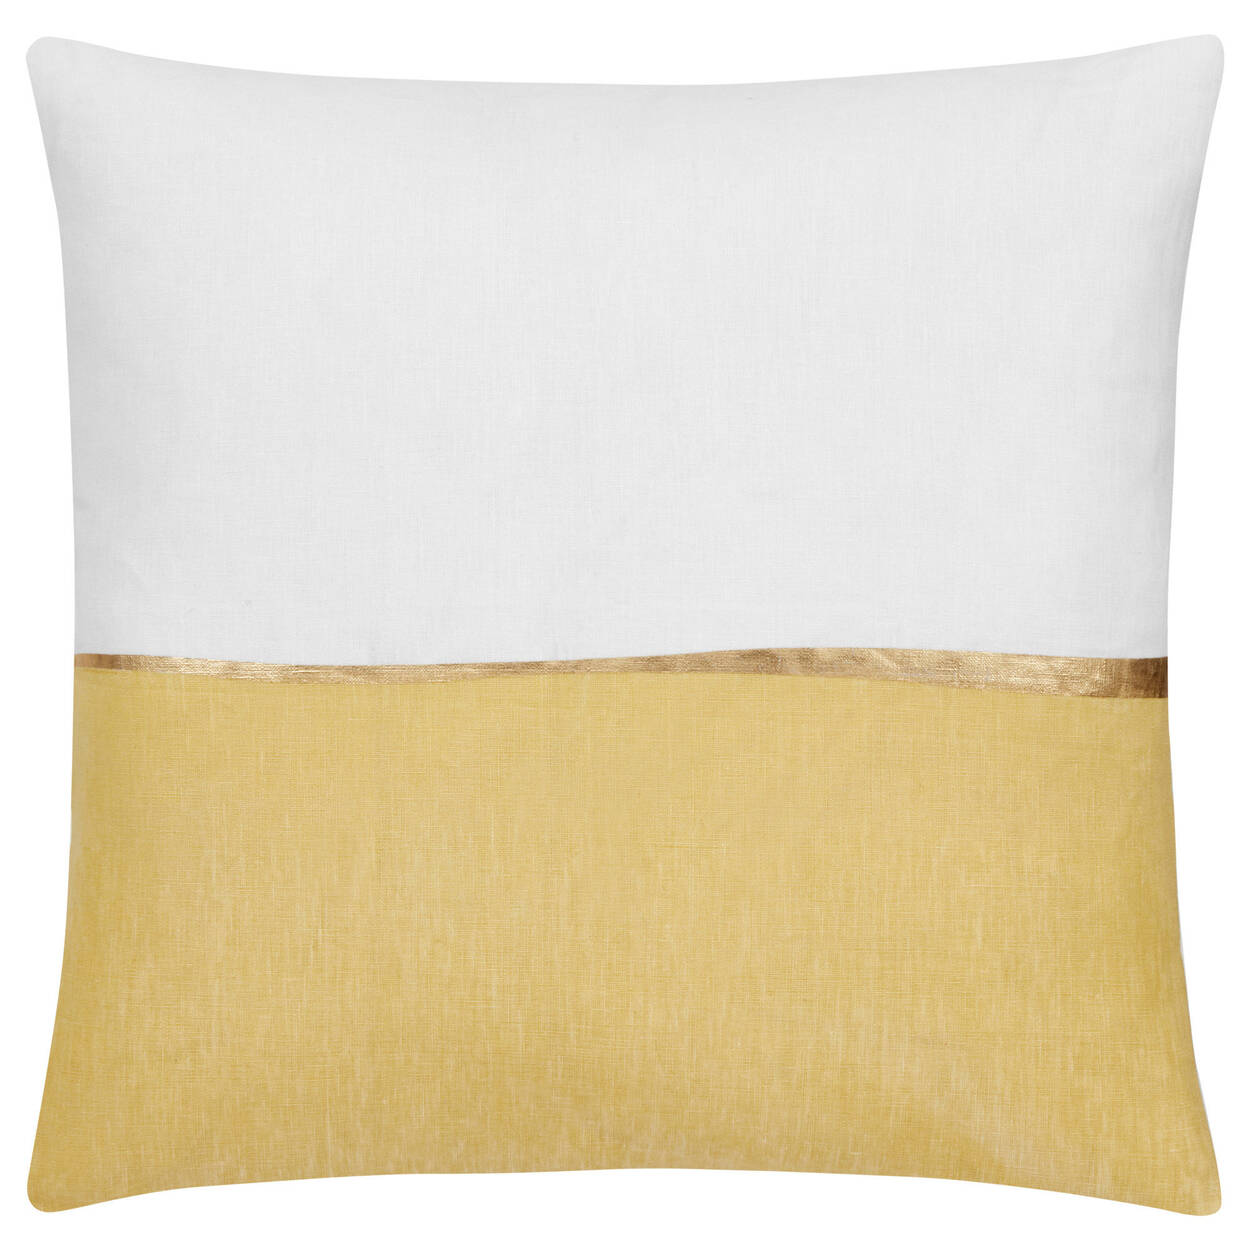 "Oubli Decorative Pillow with Foil Embellishment 20"" X 20"""